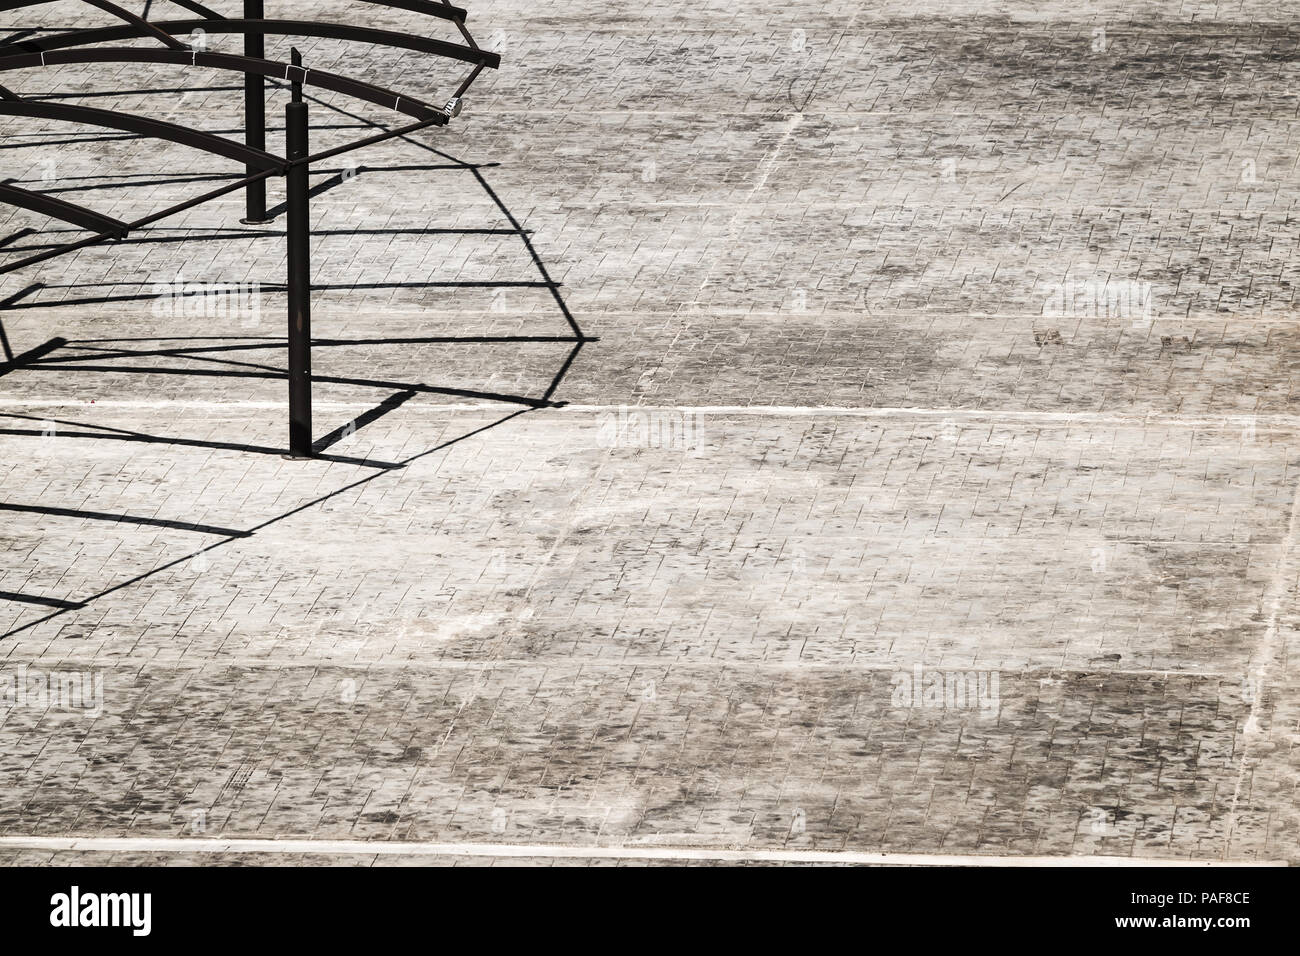 grey tiled floor with shadows from a canopy - Stock Image